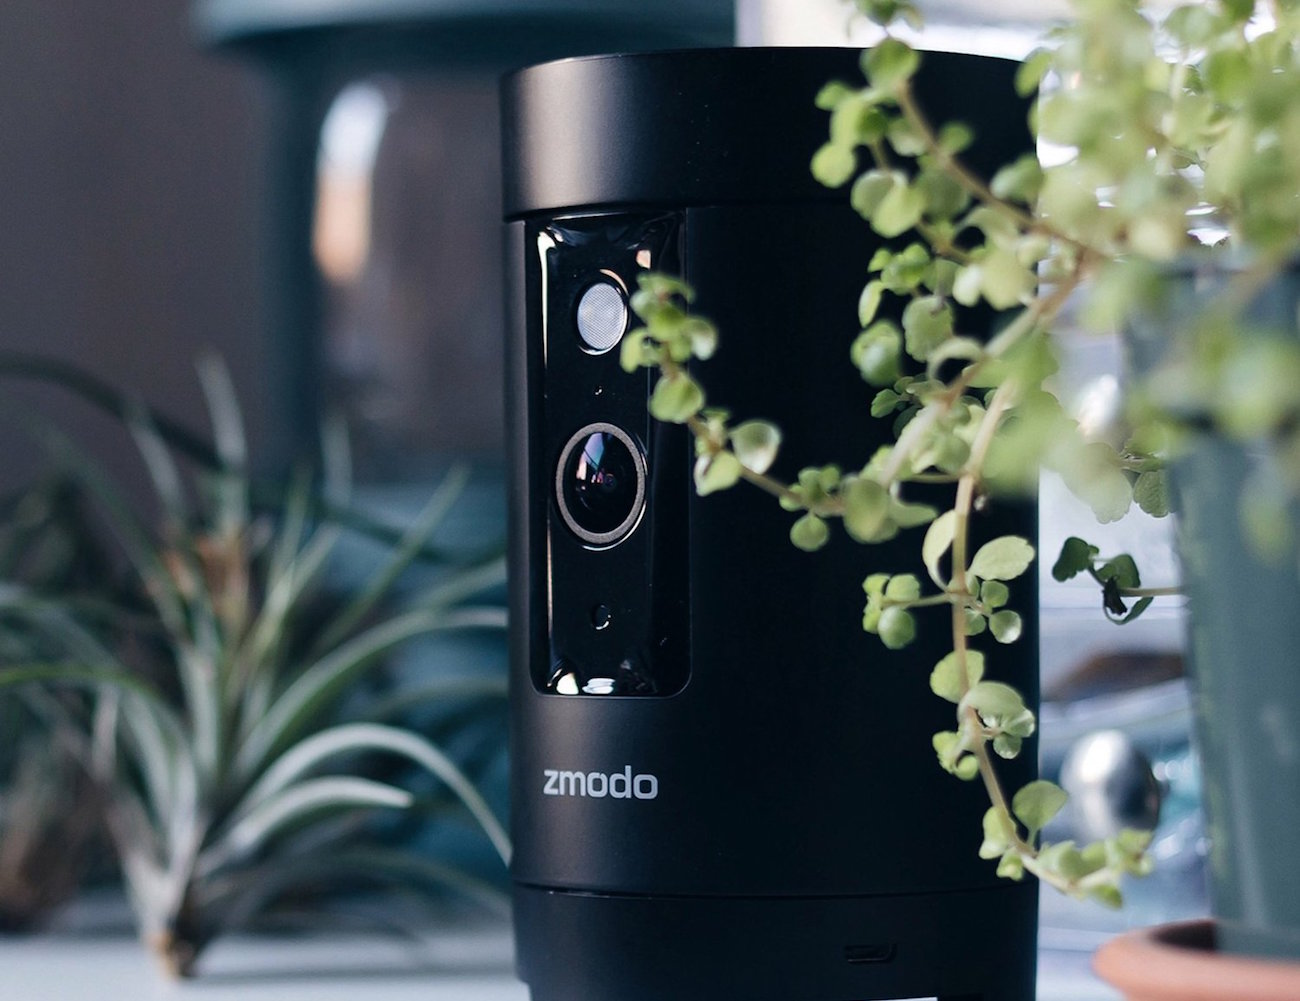 Zmodo Pivot 360 Robotic Camera & Smart Hub